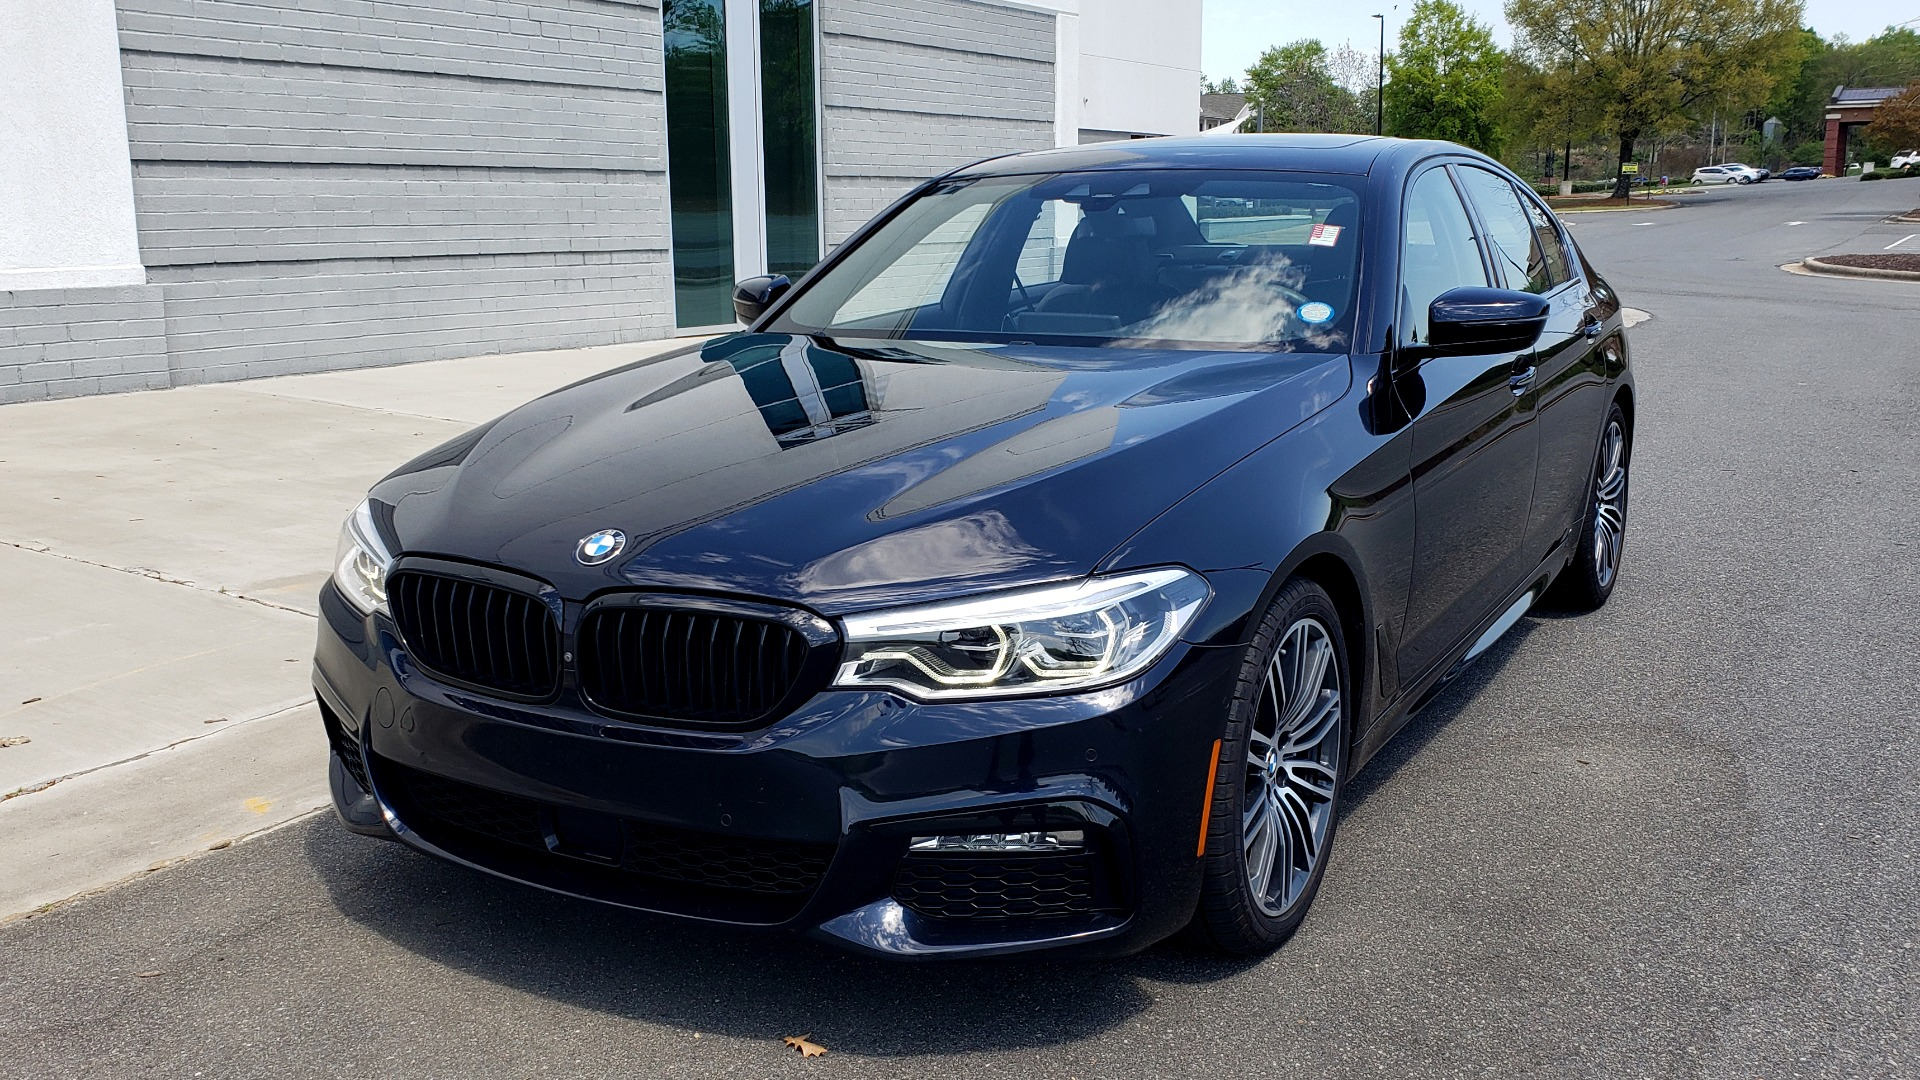 Used 2017 BMW 5 SERIES 540I XDRIVE M-SPORT / PREMIUM / DRVR ASST PLUS / CLD WTHR / LUXURY for sale Sold at Formula Imports in Charlotte NC 28227 5